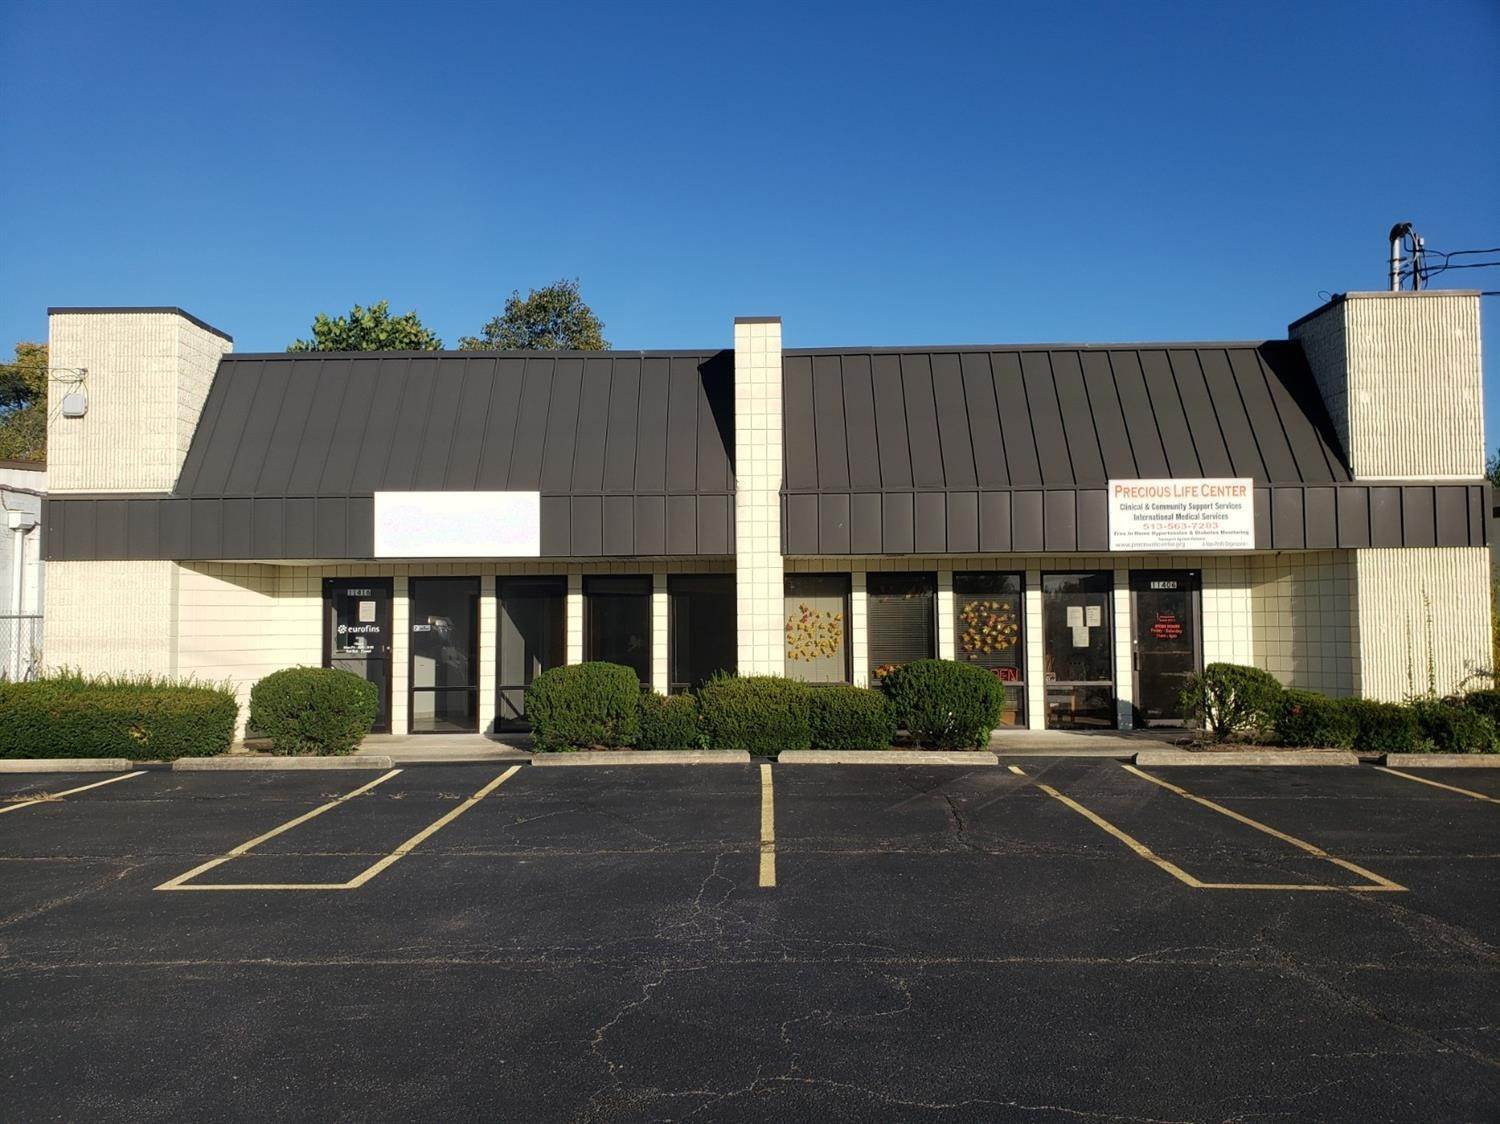 Commercial for Sale at 11406 Reading Road Sharonville, Ohio 45241 United States